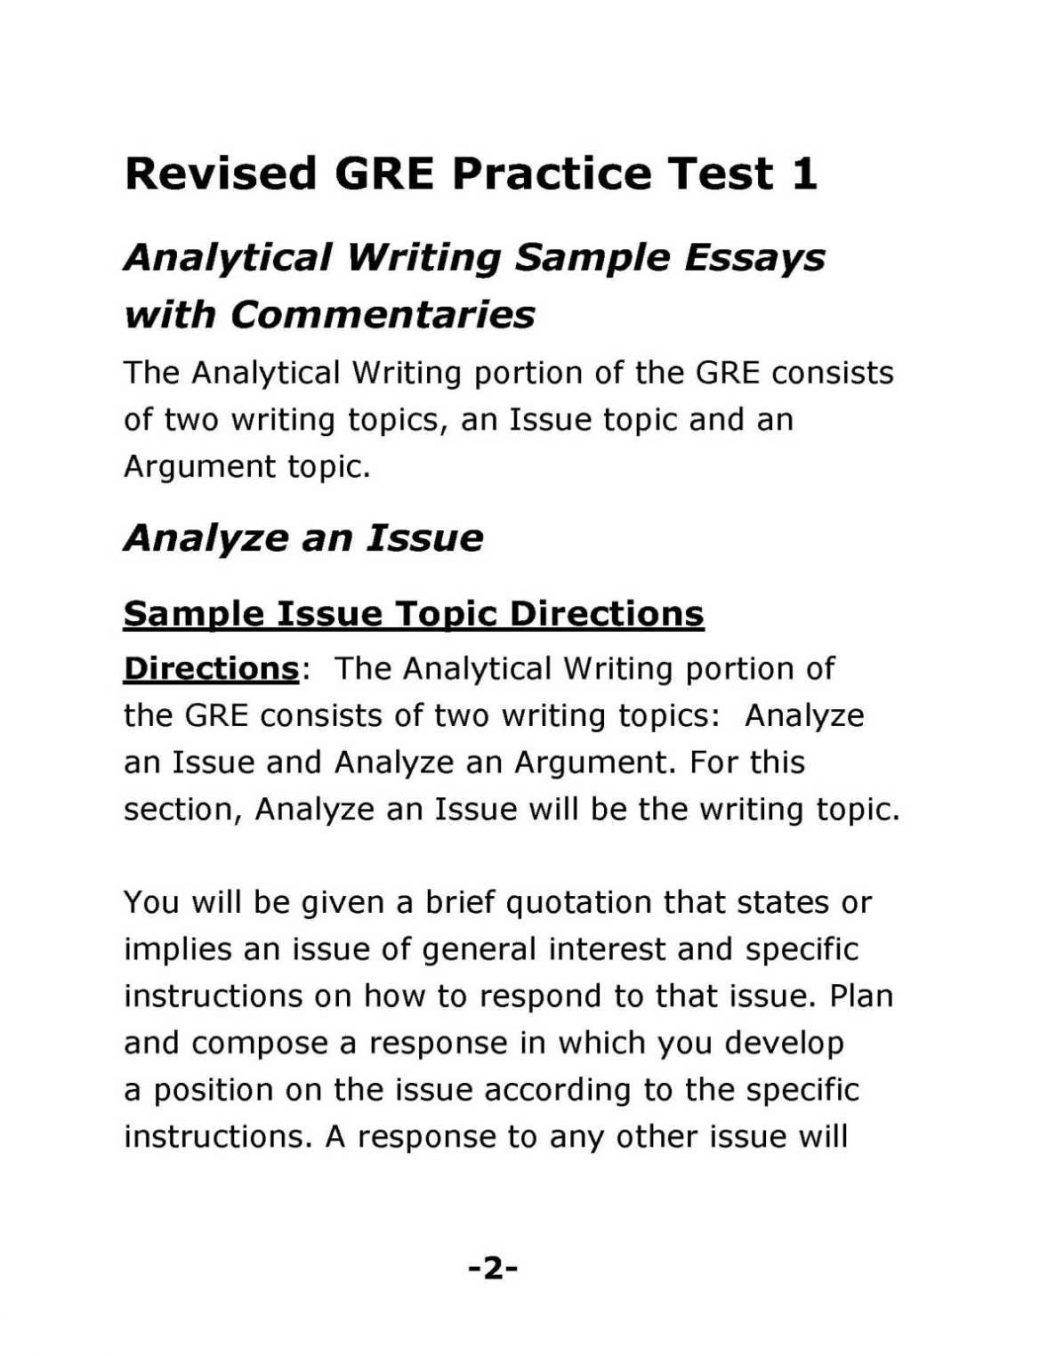 007 Essay Example Argumentative Analysis Topics Thesis For Literary Gre Questions List Sample Test Papers With Soluti Real Pool Issue Common Answers To Pdf Argument And 1048x1356 Fantastic Prompts Analytical Writing Full